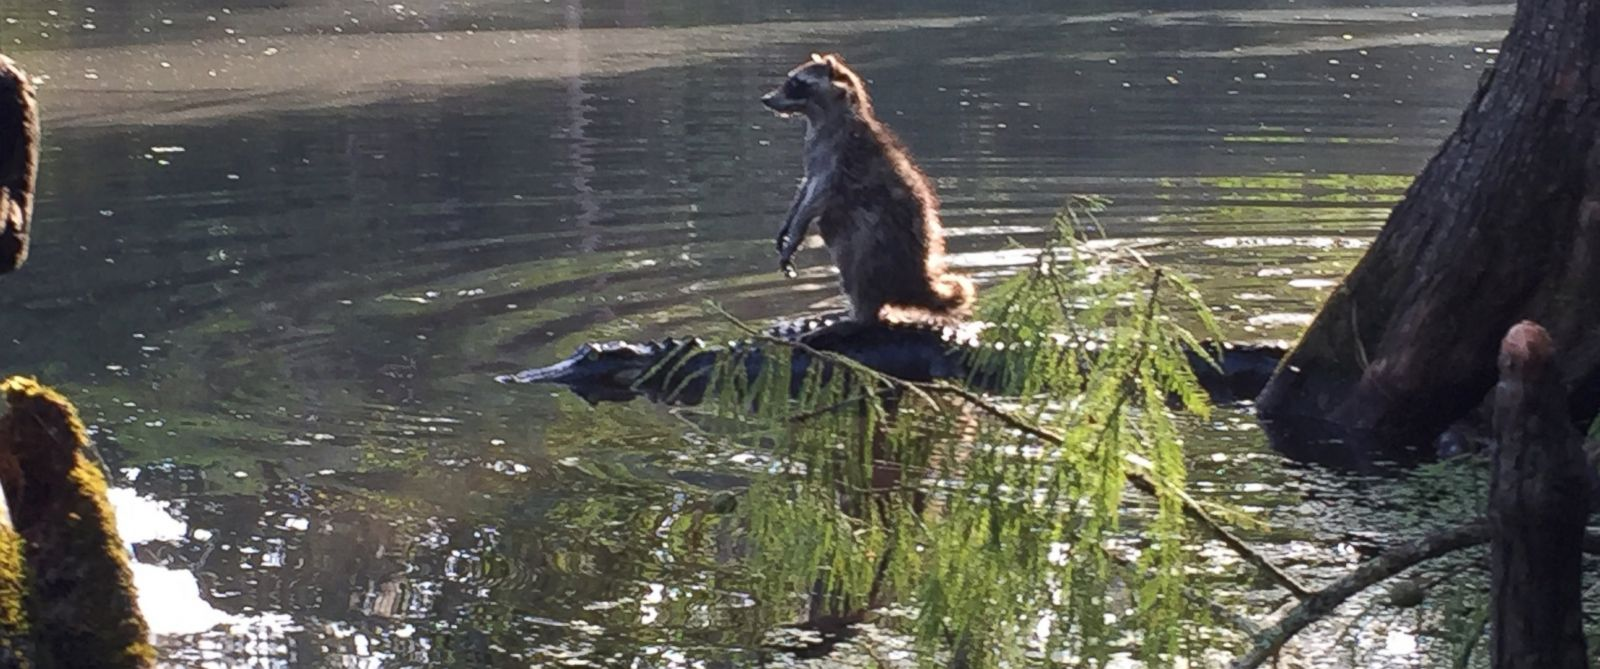 PHOTO: Richard Jones snapped this photo of a raccoon and alligator at the Ocala National Forest in Florida.